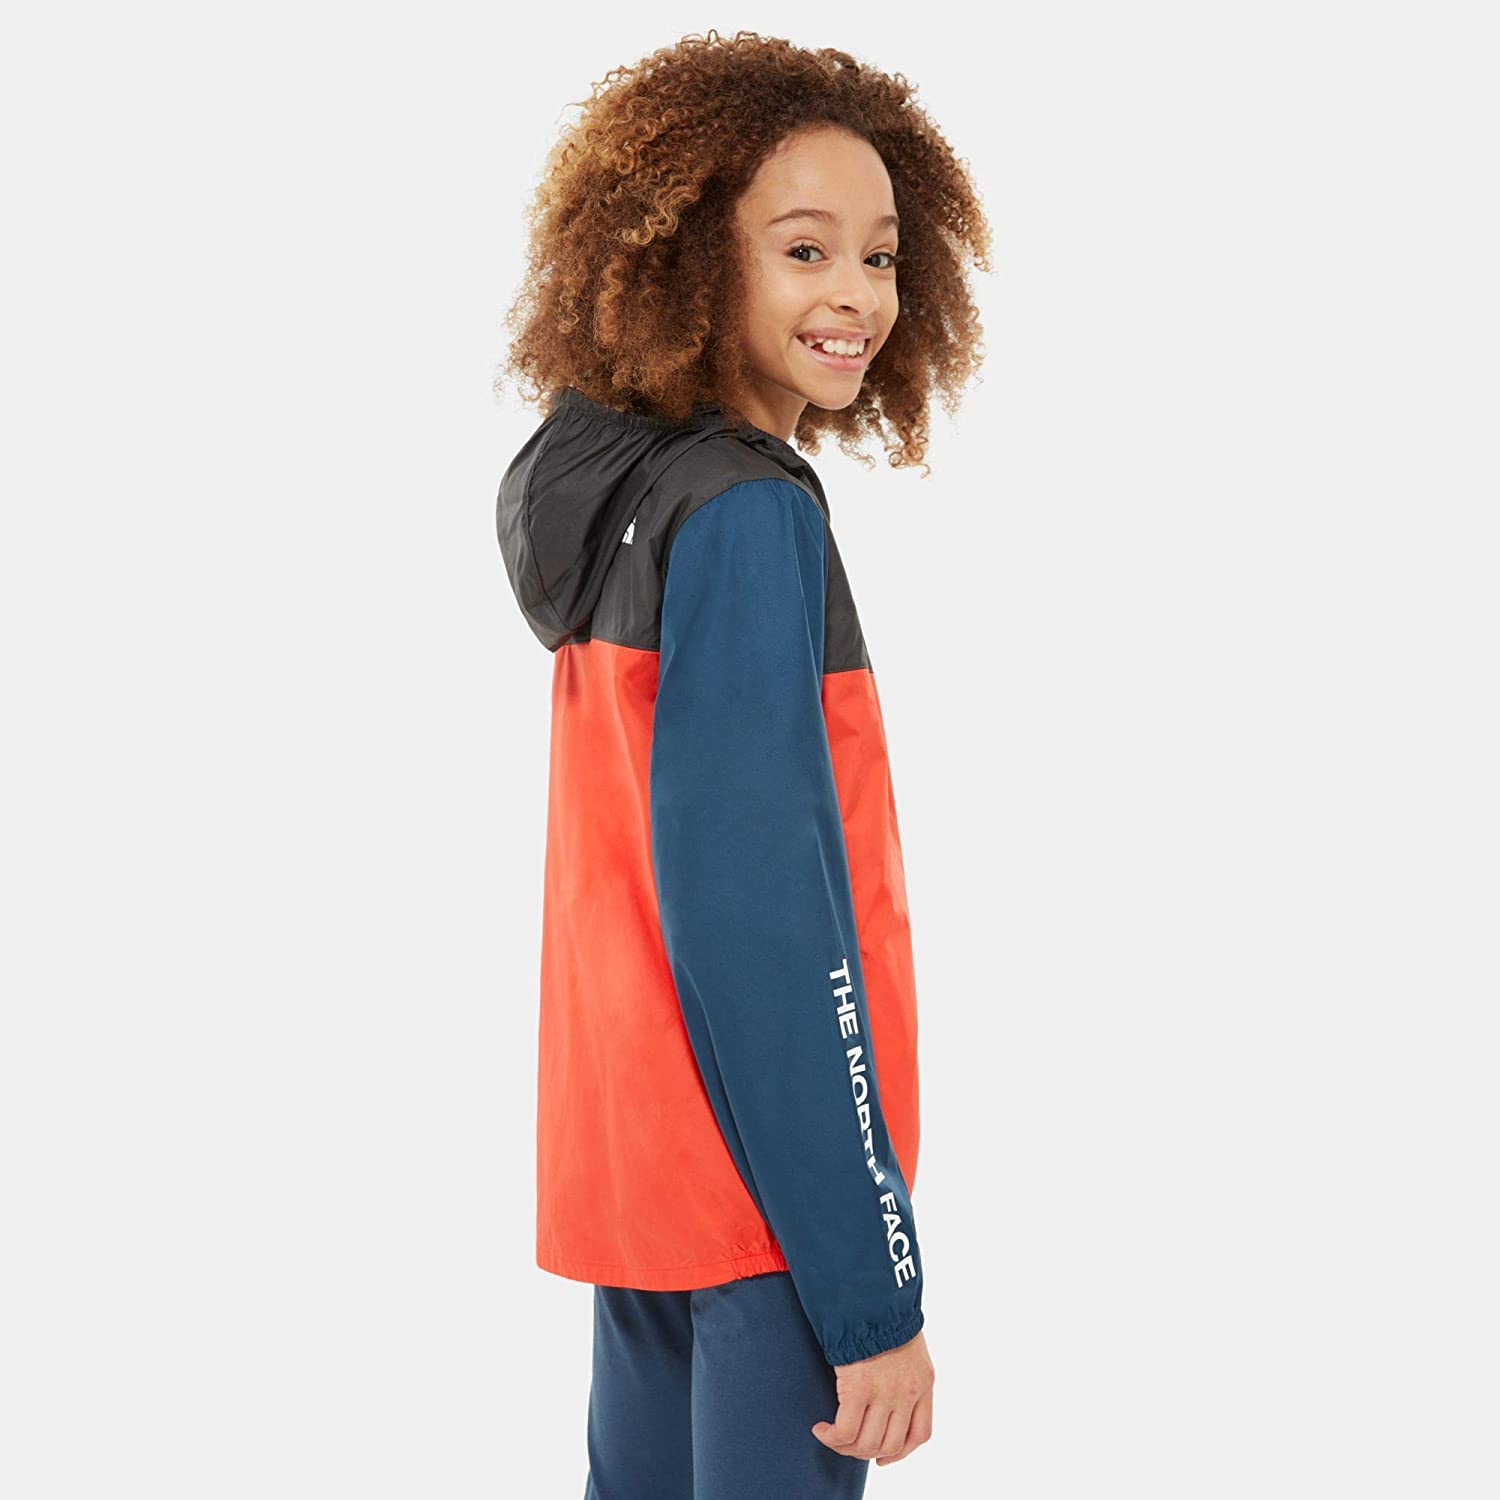 The North Face Y Reactor Wind Jacket Jacket Bambini NF0A3NKG YH4 Fiery Red Asphalt Grey